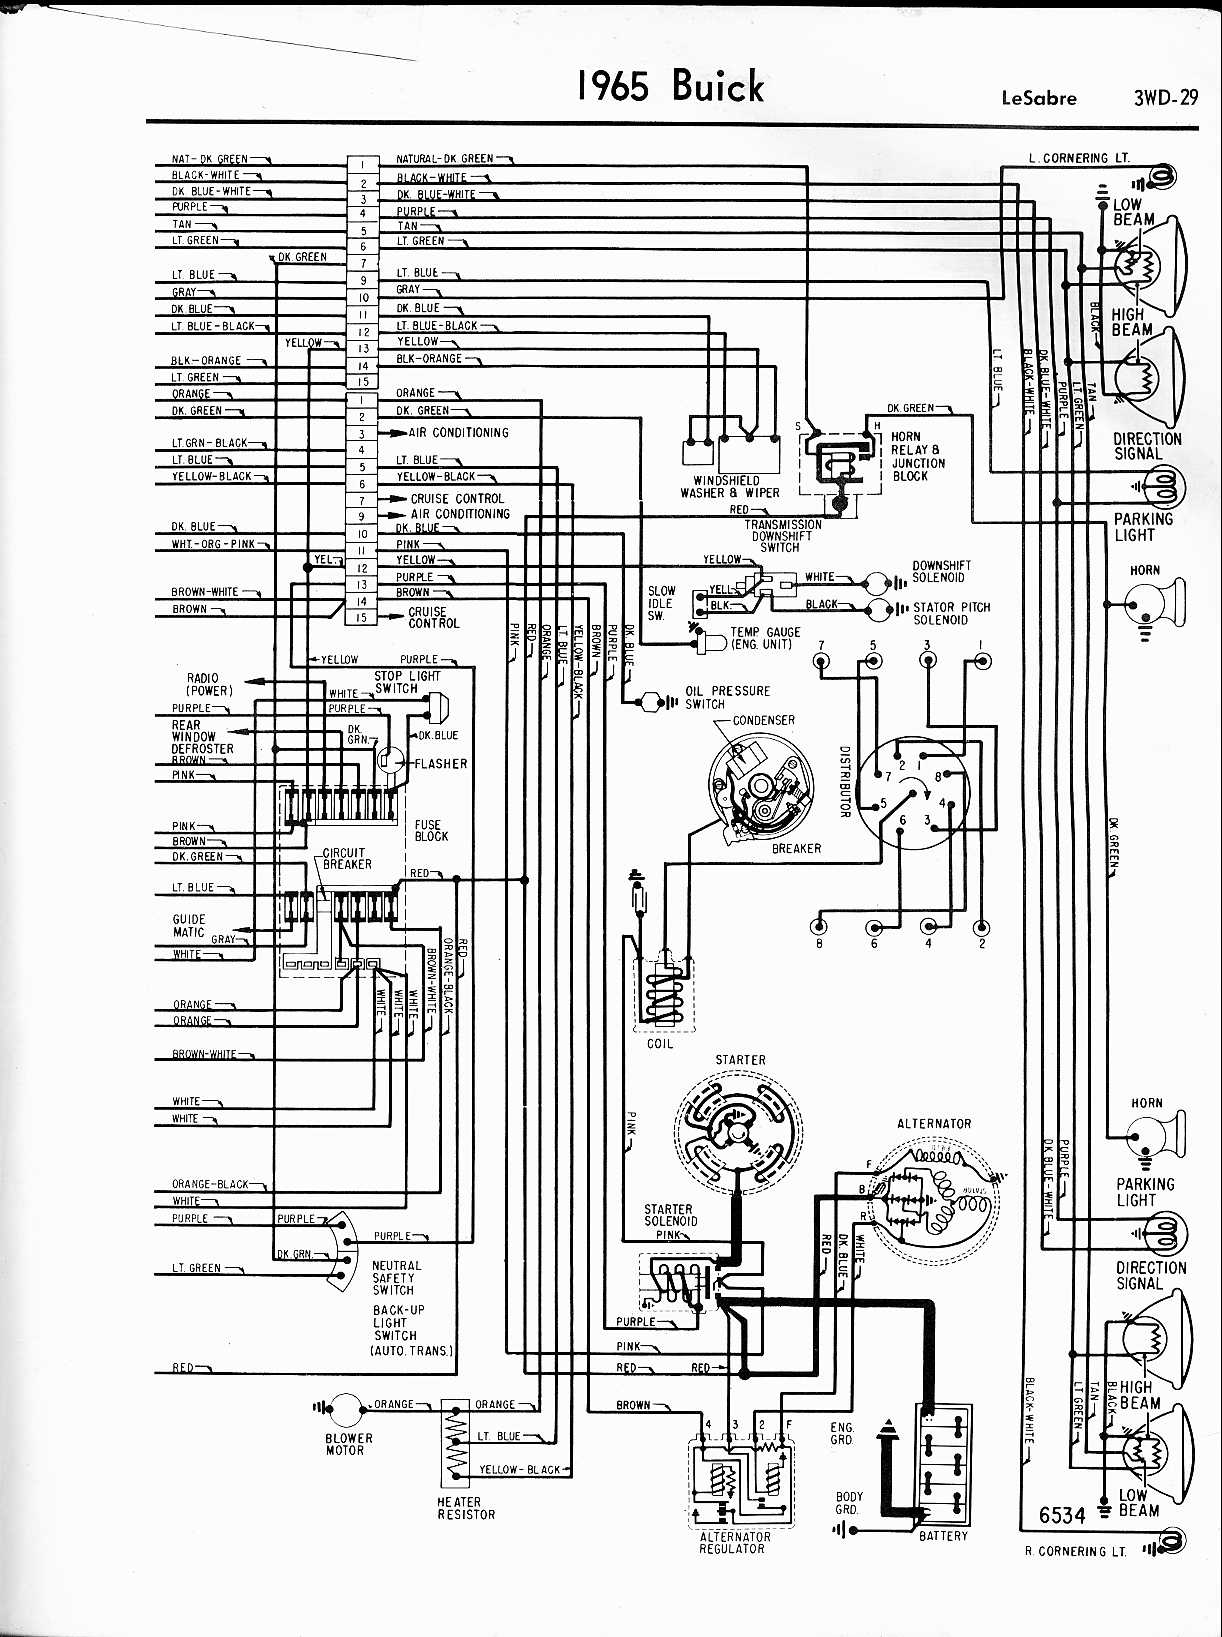 Buick Alternator Wiring Diagram - Wiring Diagram Data on 1967 mustang wiper motor wiring diagram, 1965 mustang fuel pump diagram, 1965 mustang brake line diagram, 1965 mustang starter solenoid, 1965 mustang engine diagram, mustang wiring harness diagram, 1965 mustang exhaust diagram, 1965 mustang assembly diagram, 1965 mustang 289 hipo engine, 1965 mustang outline, 1965 mustang blueprints, 1965 mustang door diagram, 1964 mustang wiring diagram, 1965 mustang burnt amber, 1966 mustang alternator diagram, 1965 mustang fuse box diagram, 1965 mustang voltage regulator diagram, ford mustang wiring diagram, 1965 mustang tachometer diagram, 1966 mustang wiring diagram,